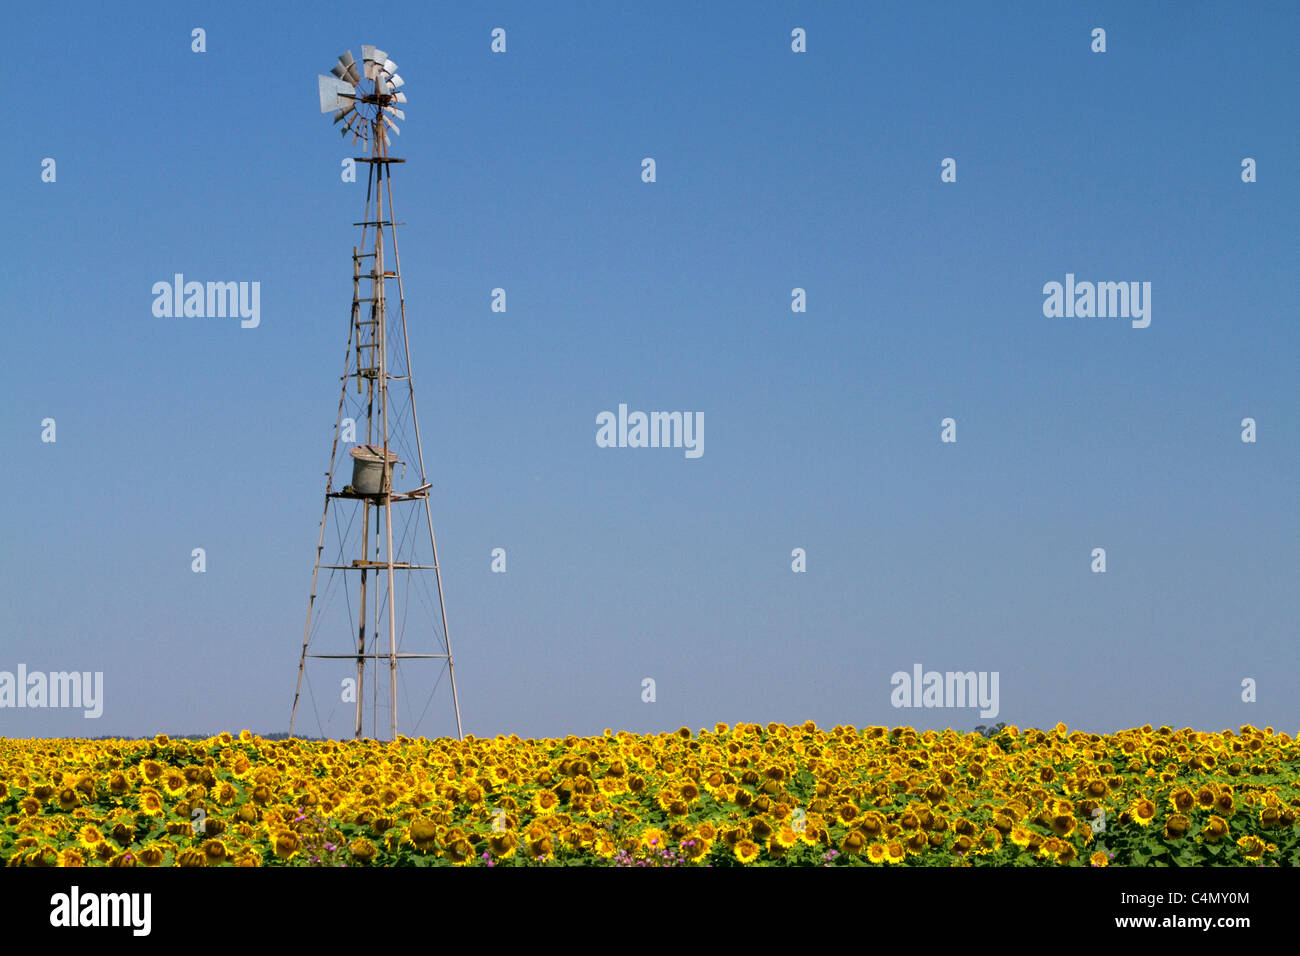 Windmill and field of sunflowers north of Necochea, Argentina. - Stock Image